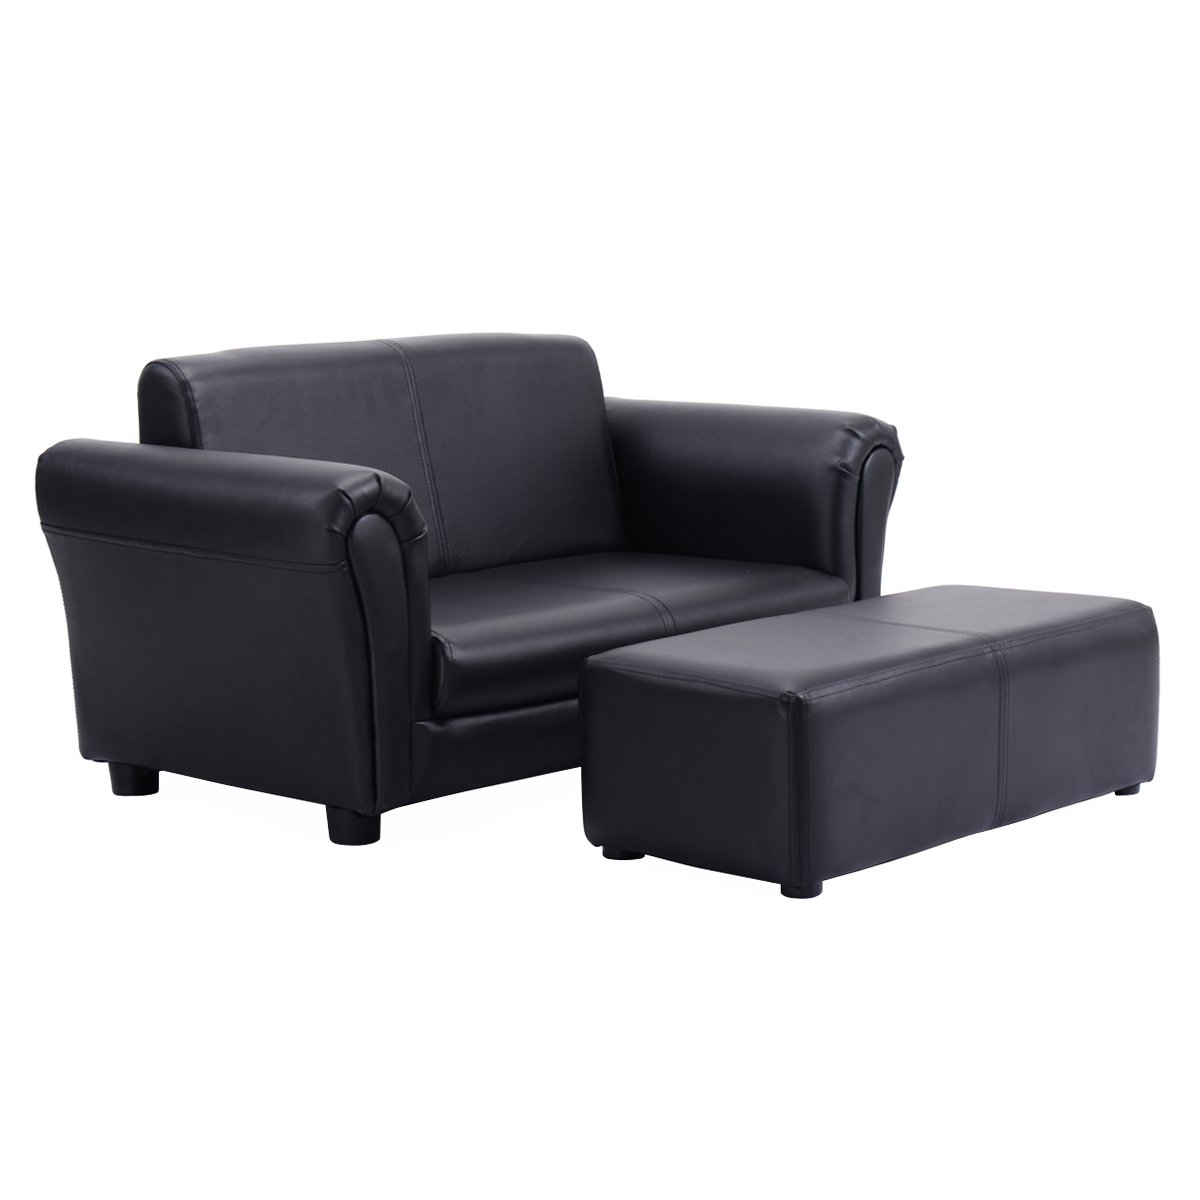 Costzon Kids Sofa Set 2 Seater Armrest Children Couch Lounge W/Footstool